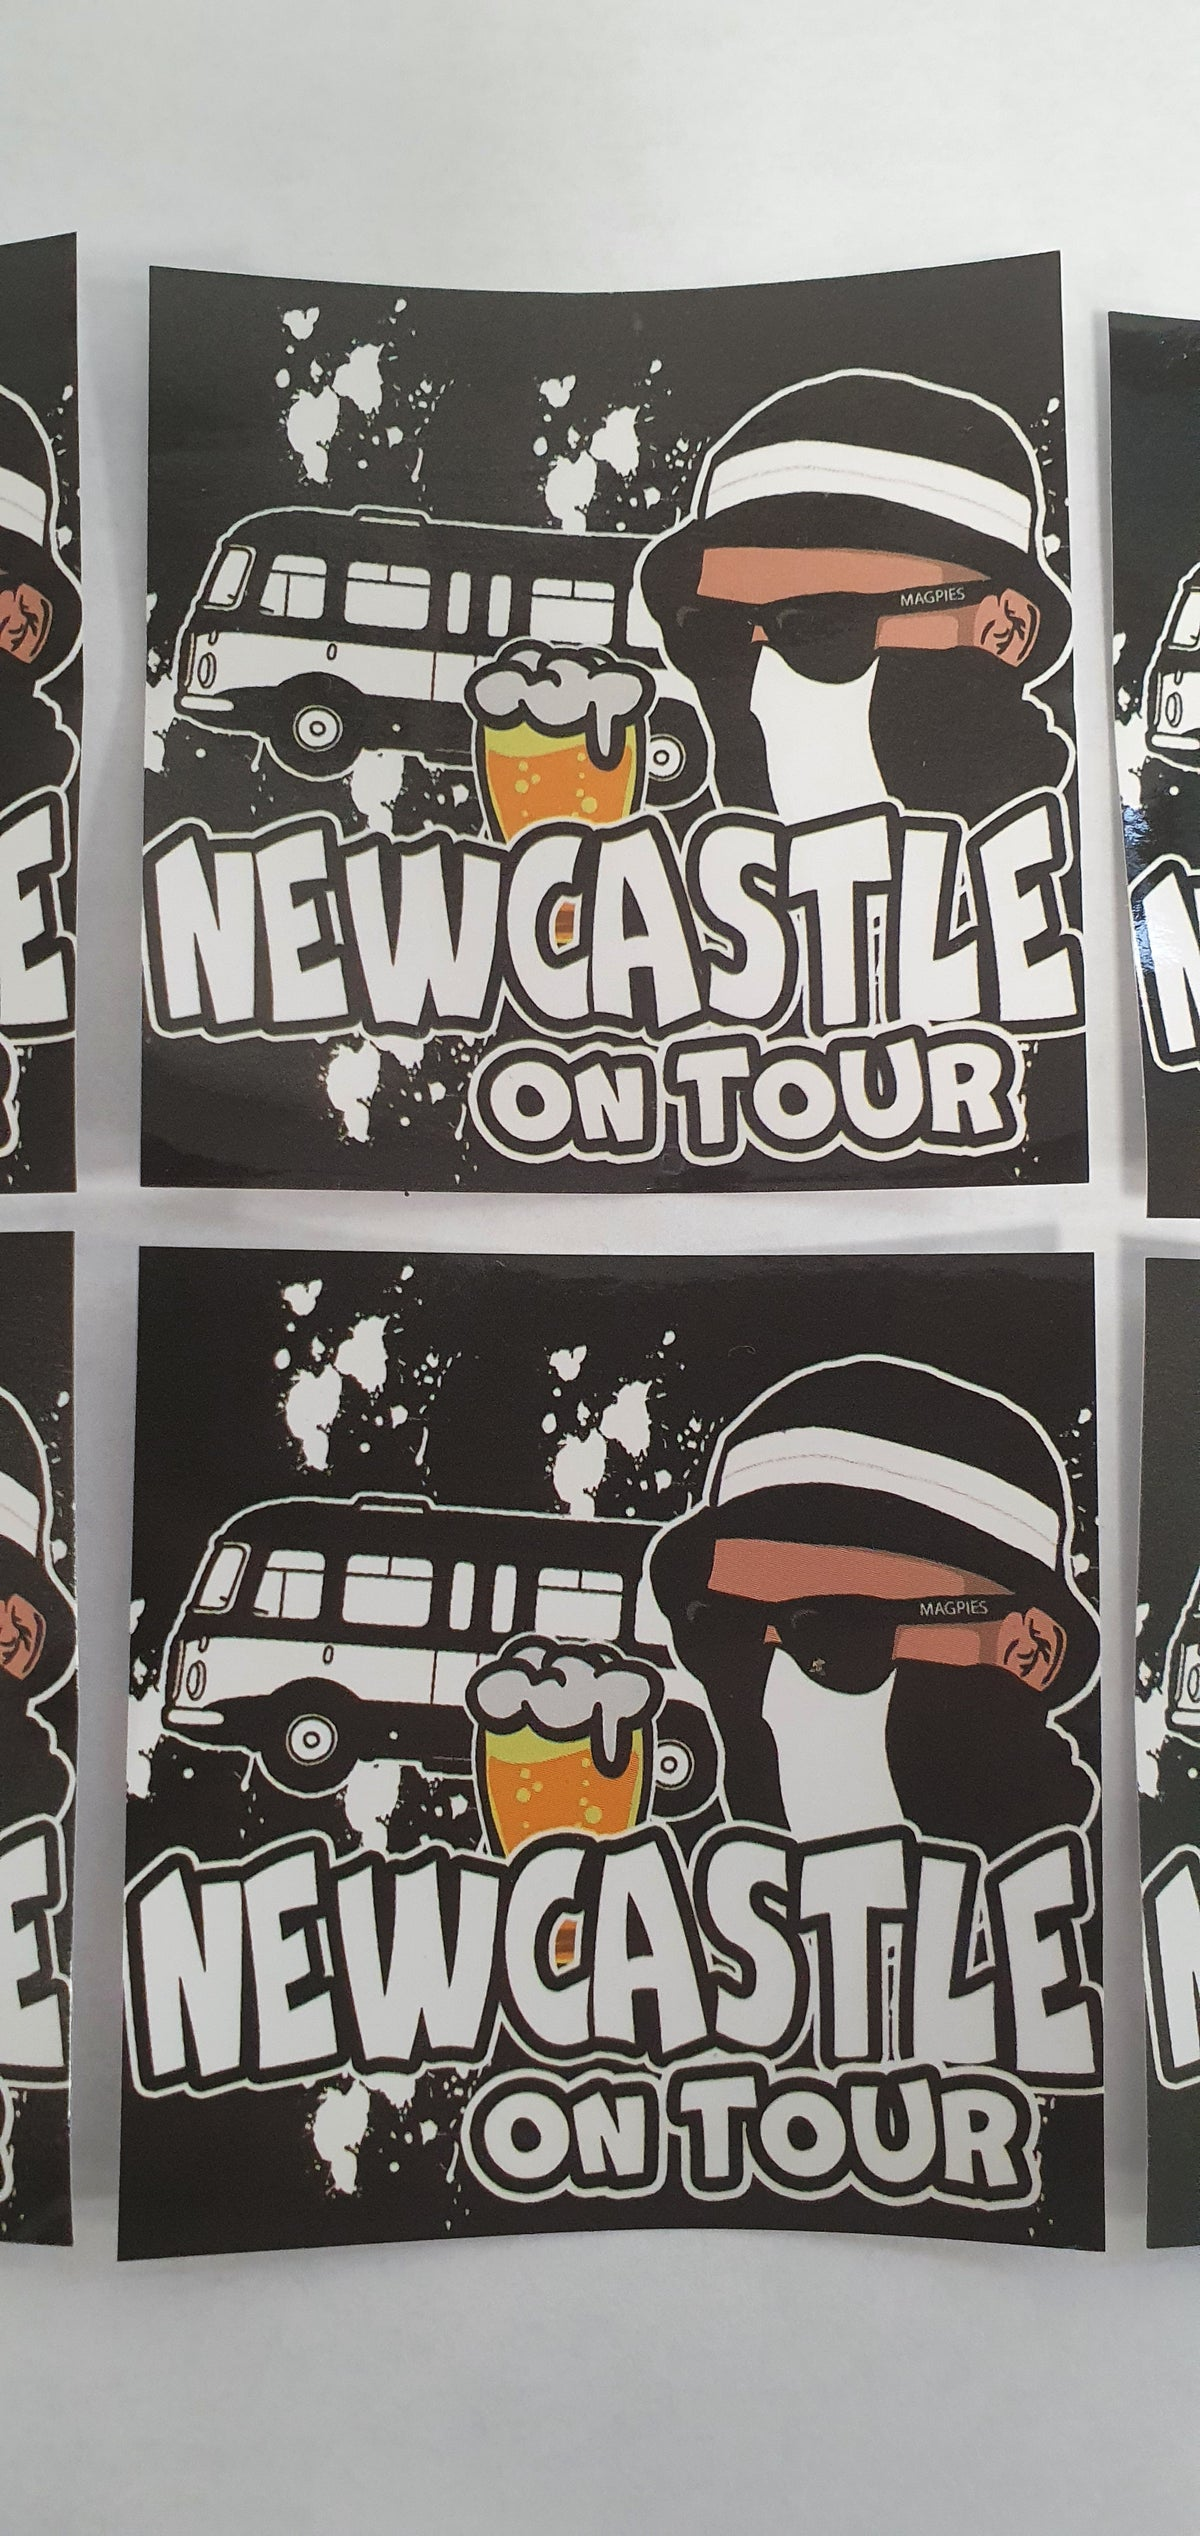 Pack of 25 7x7cm Newcastle on tour football/ultras stickers.